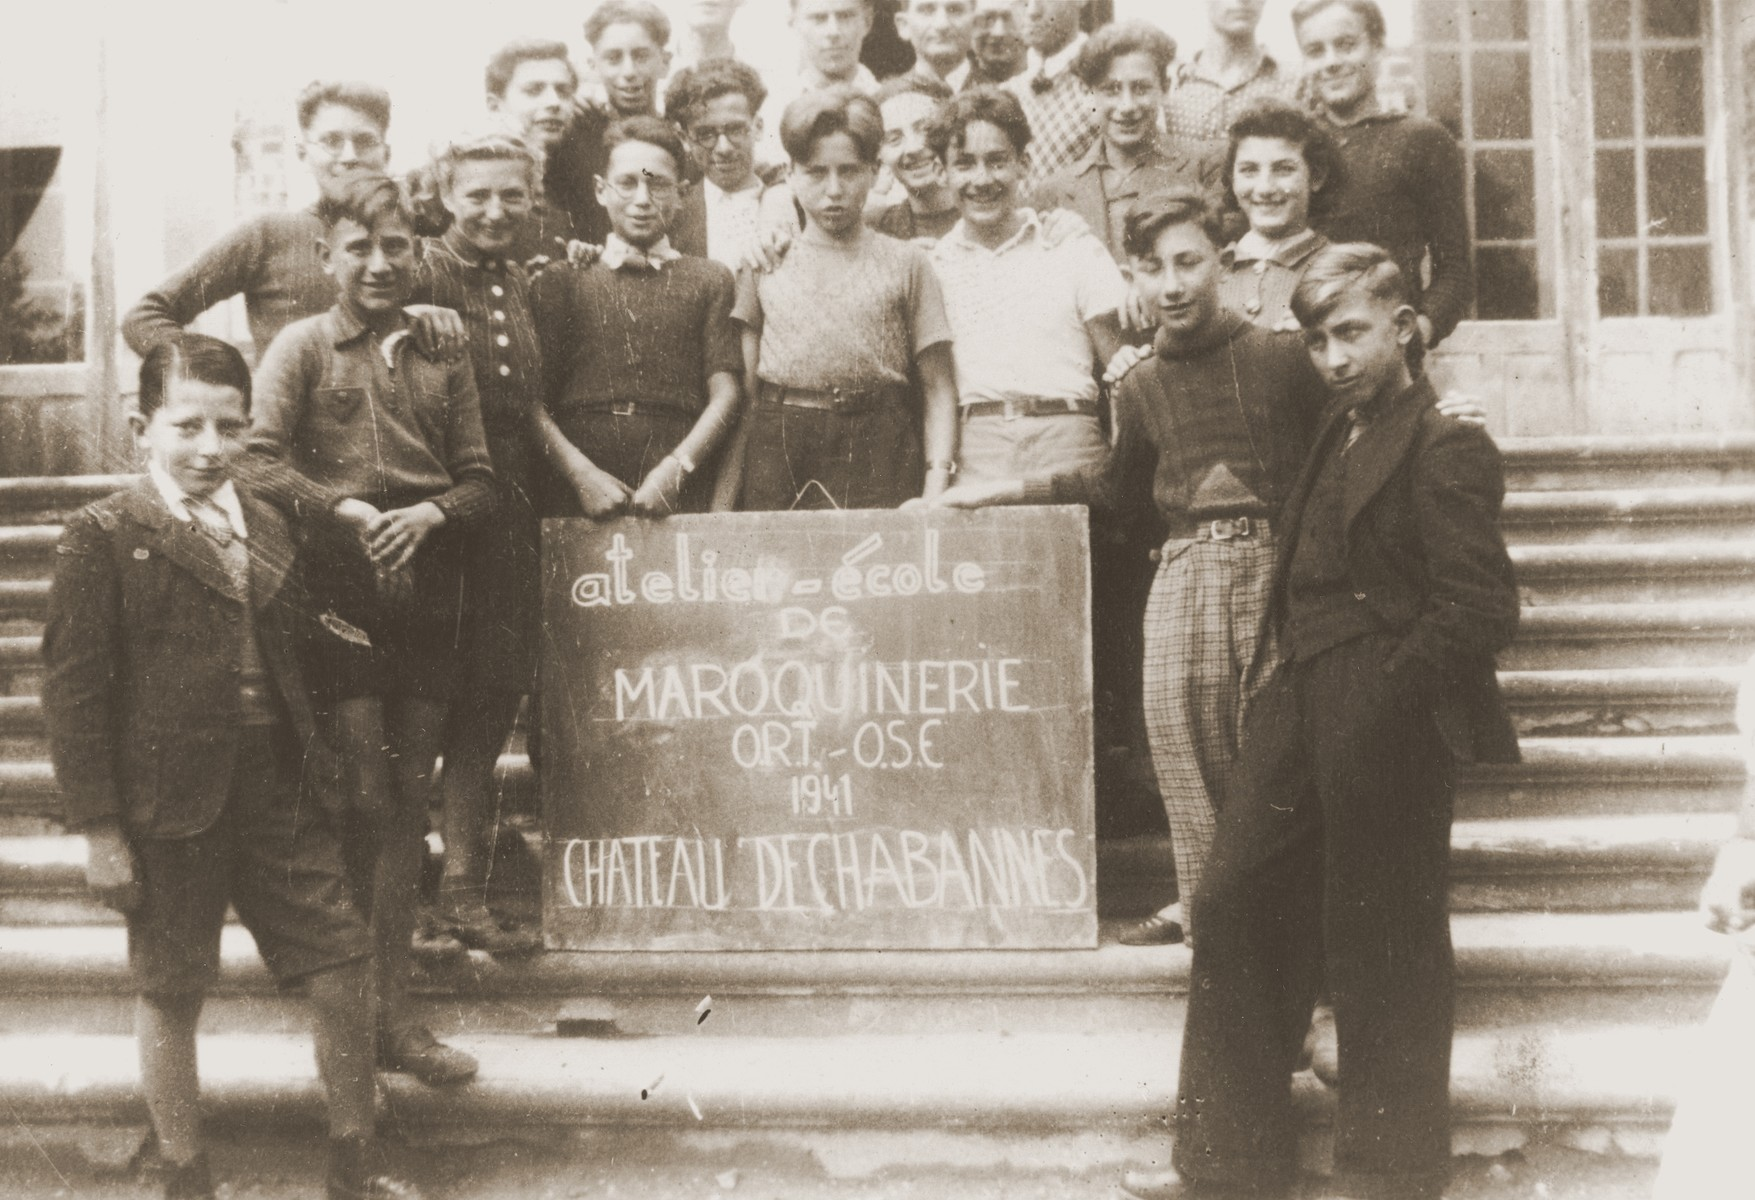 Jewish refugee youth who are students in an ORT leather working class at the Château de Chabannes children's home, pose on the front staircase of the home.  Château de Chabannes was sponsored by the OSE (Oeuvre de secours aux Enfants).    Heinz Stephan Lewy is pictured in the front row, center.  Egon Halbright (born Halbreich) is located in the second row, wearing glasses and a white shirt--identified by his daughter, Rita Halbright